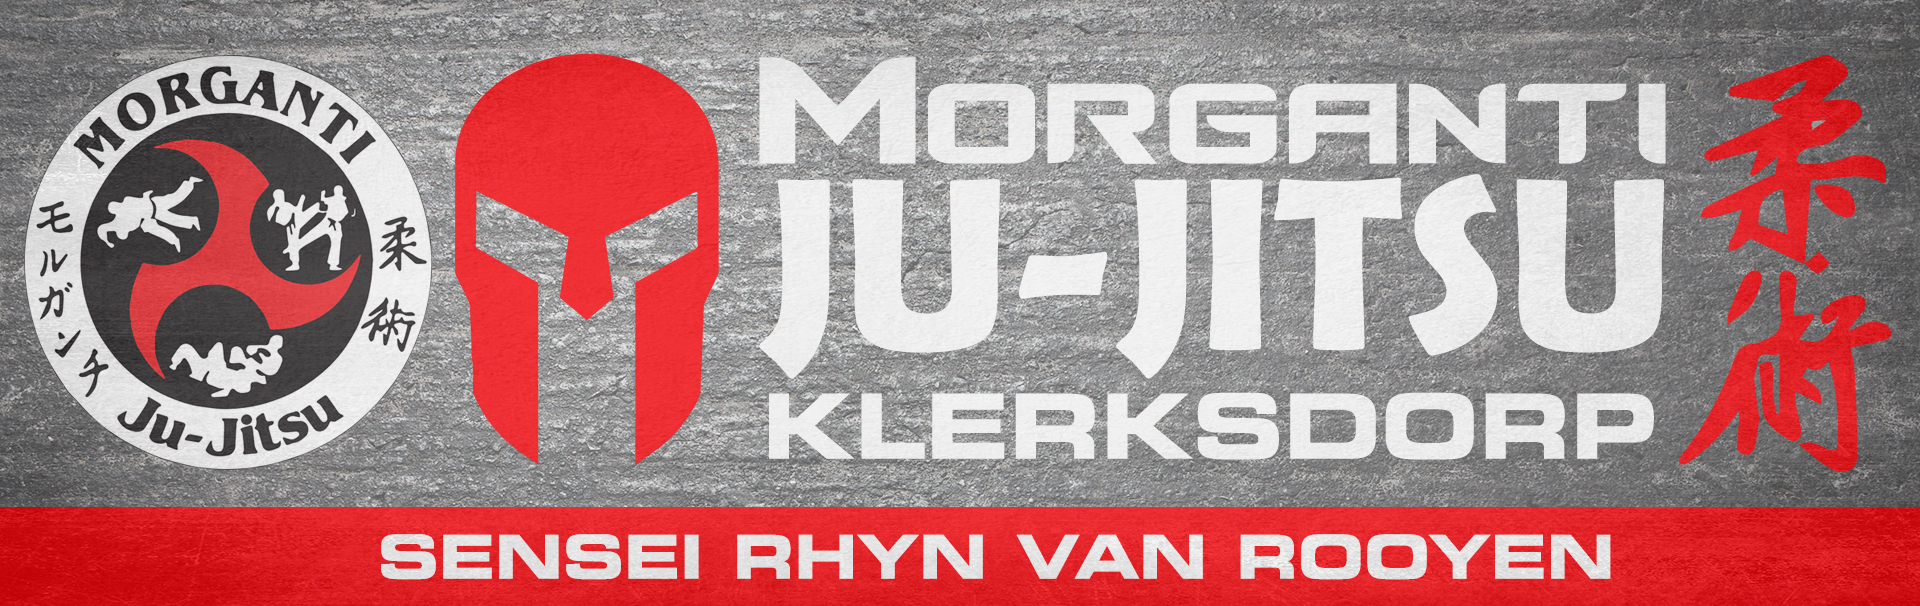 SA Trails Kempton Park 21 Oct 2017 | Morganti Ju-Jitsu Klerksdorp